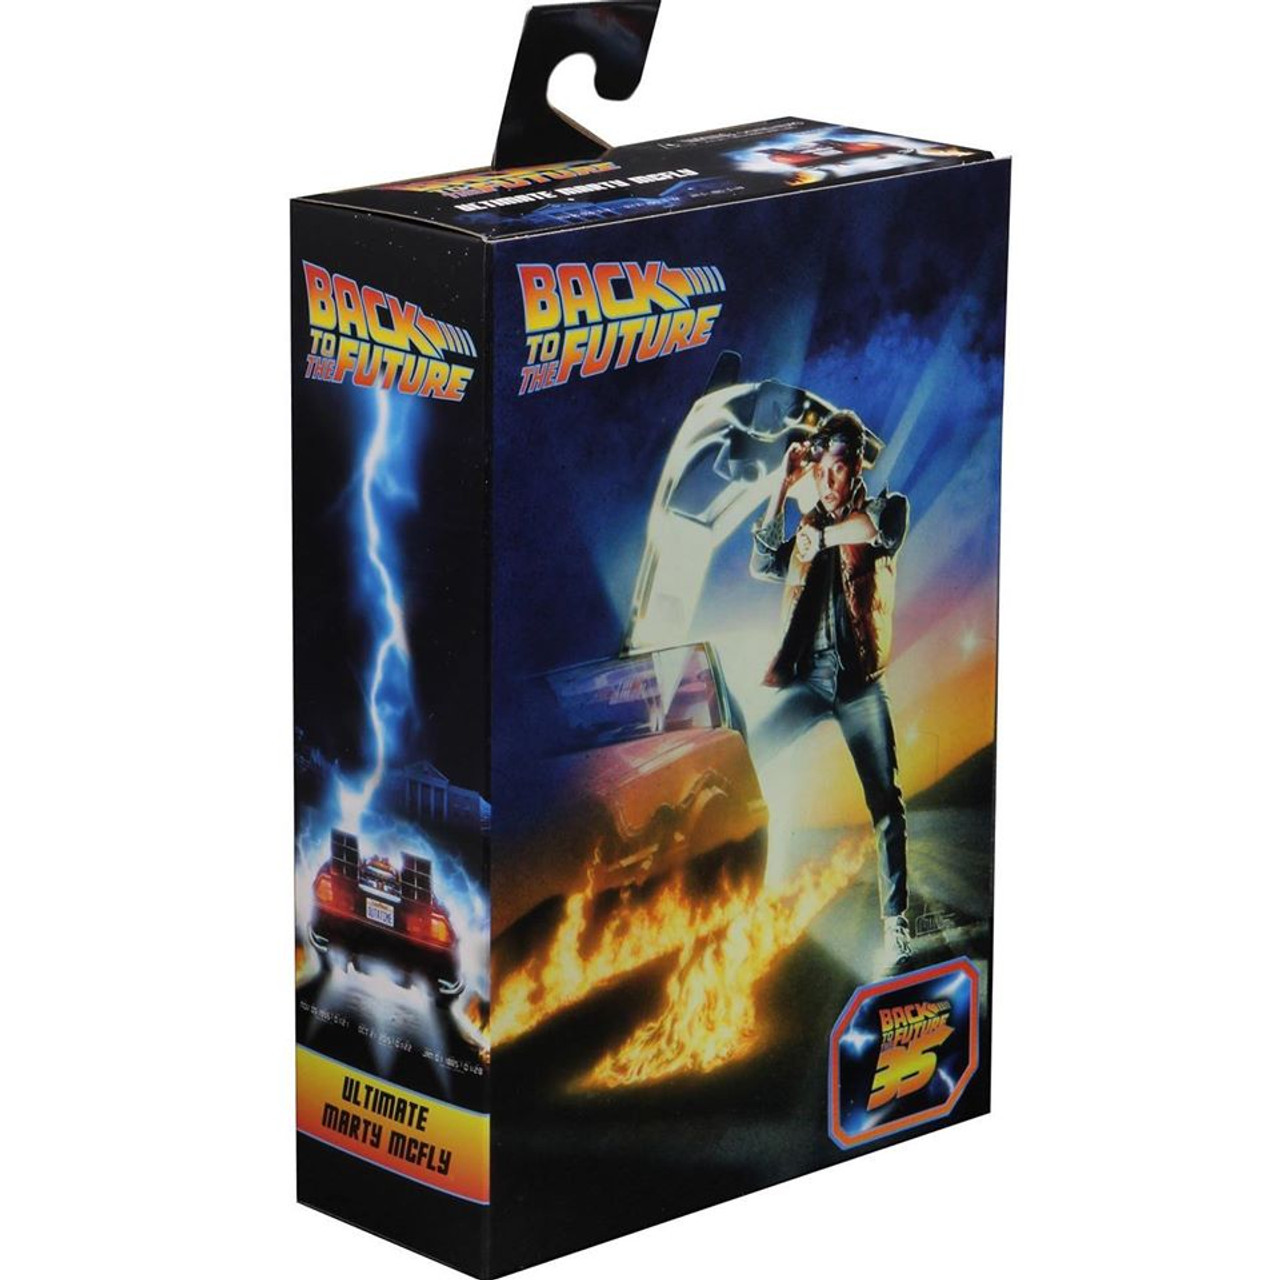 Action Figure NECA Back to the Future Ultimate Tales from Space Marty 7 in environ 17.78 cm